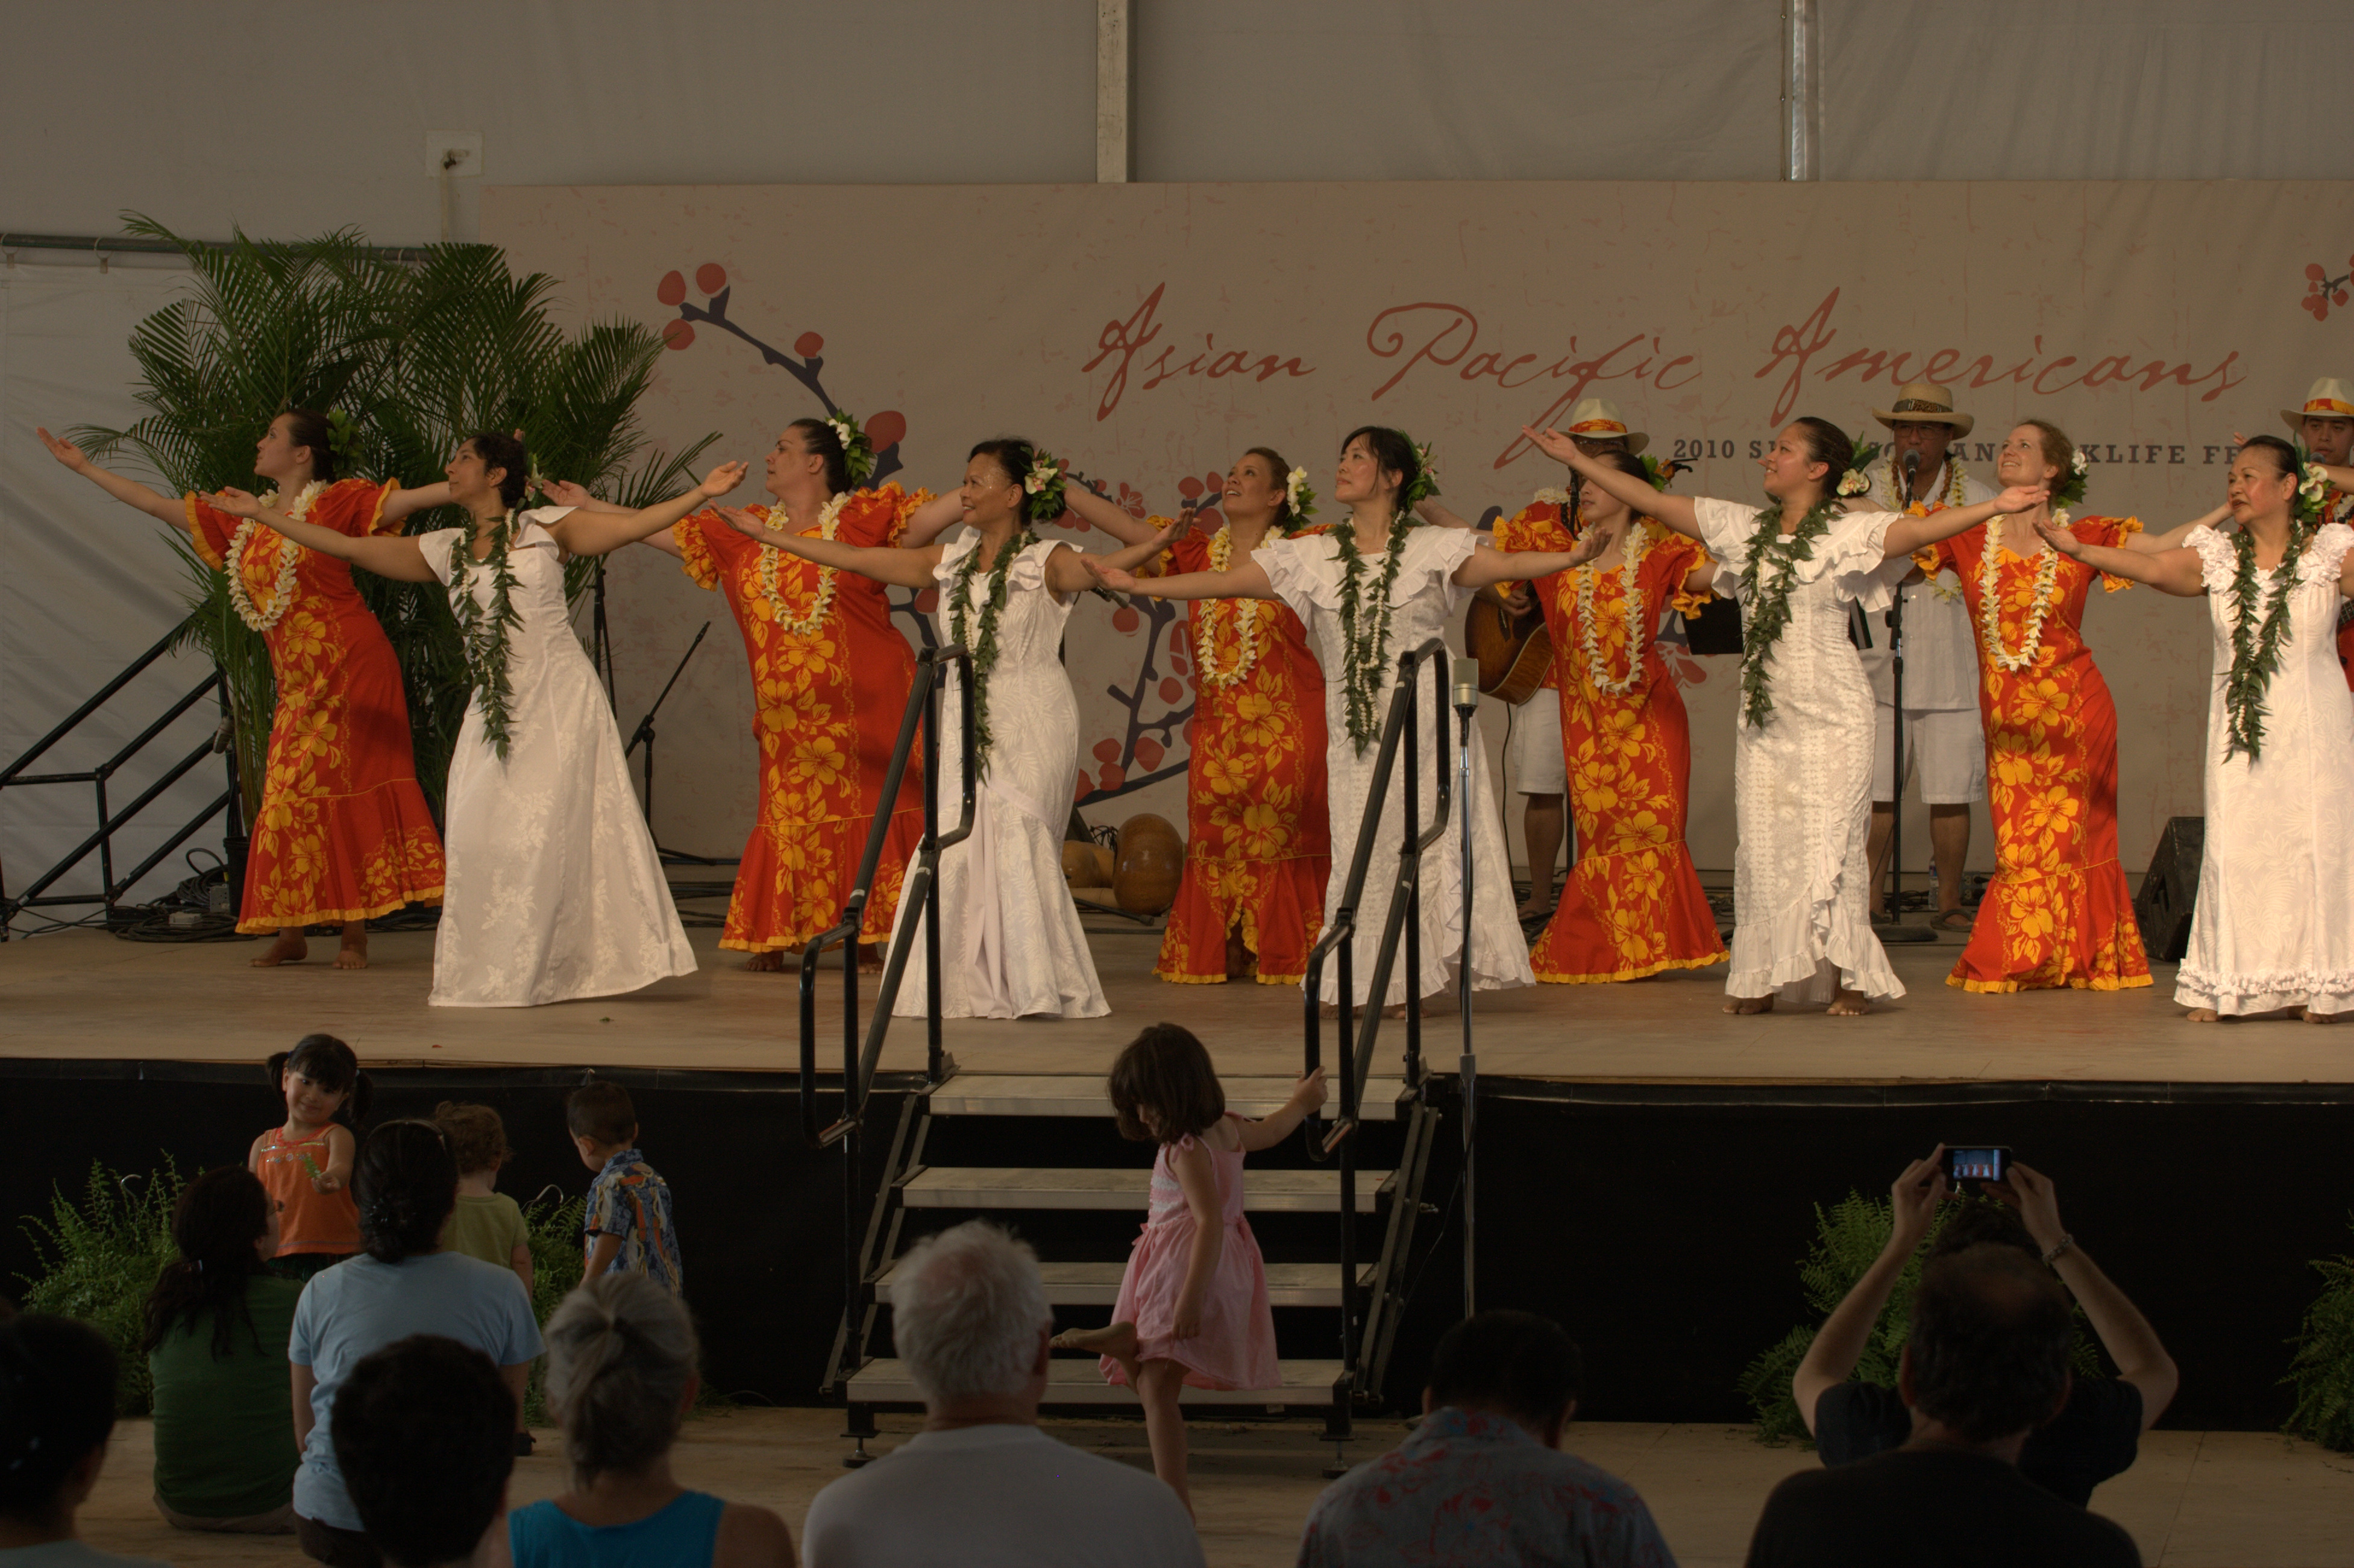 Hula dancers, some in white dresses and some in red and yellow dresses, on raised stage performing h